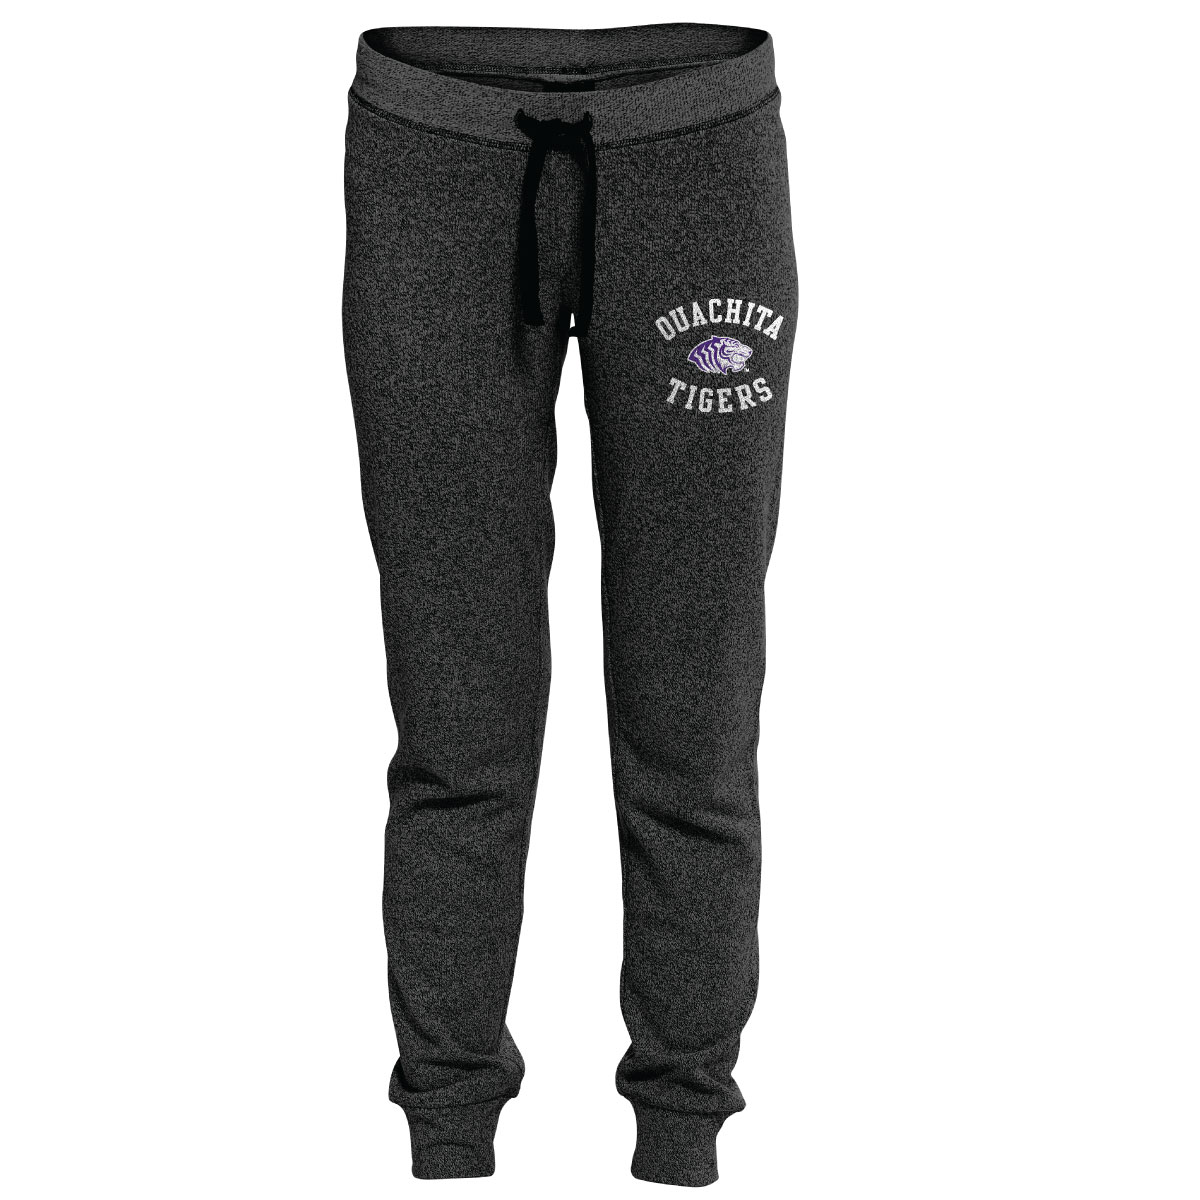 OUACHITA TIGERS BOARDWALK PANTS